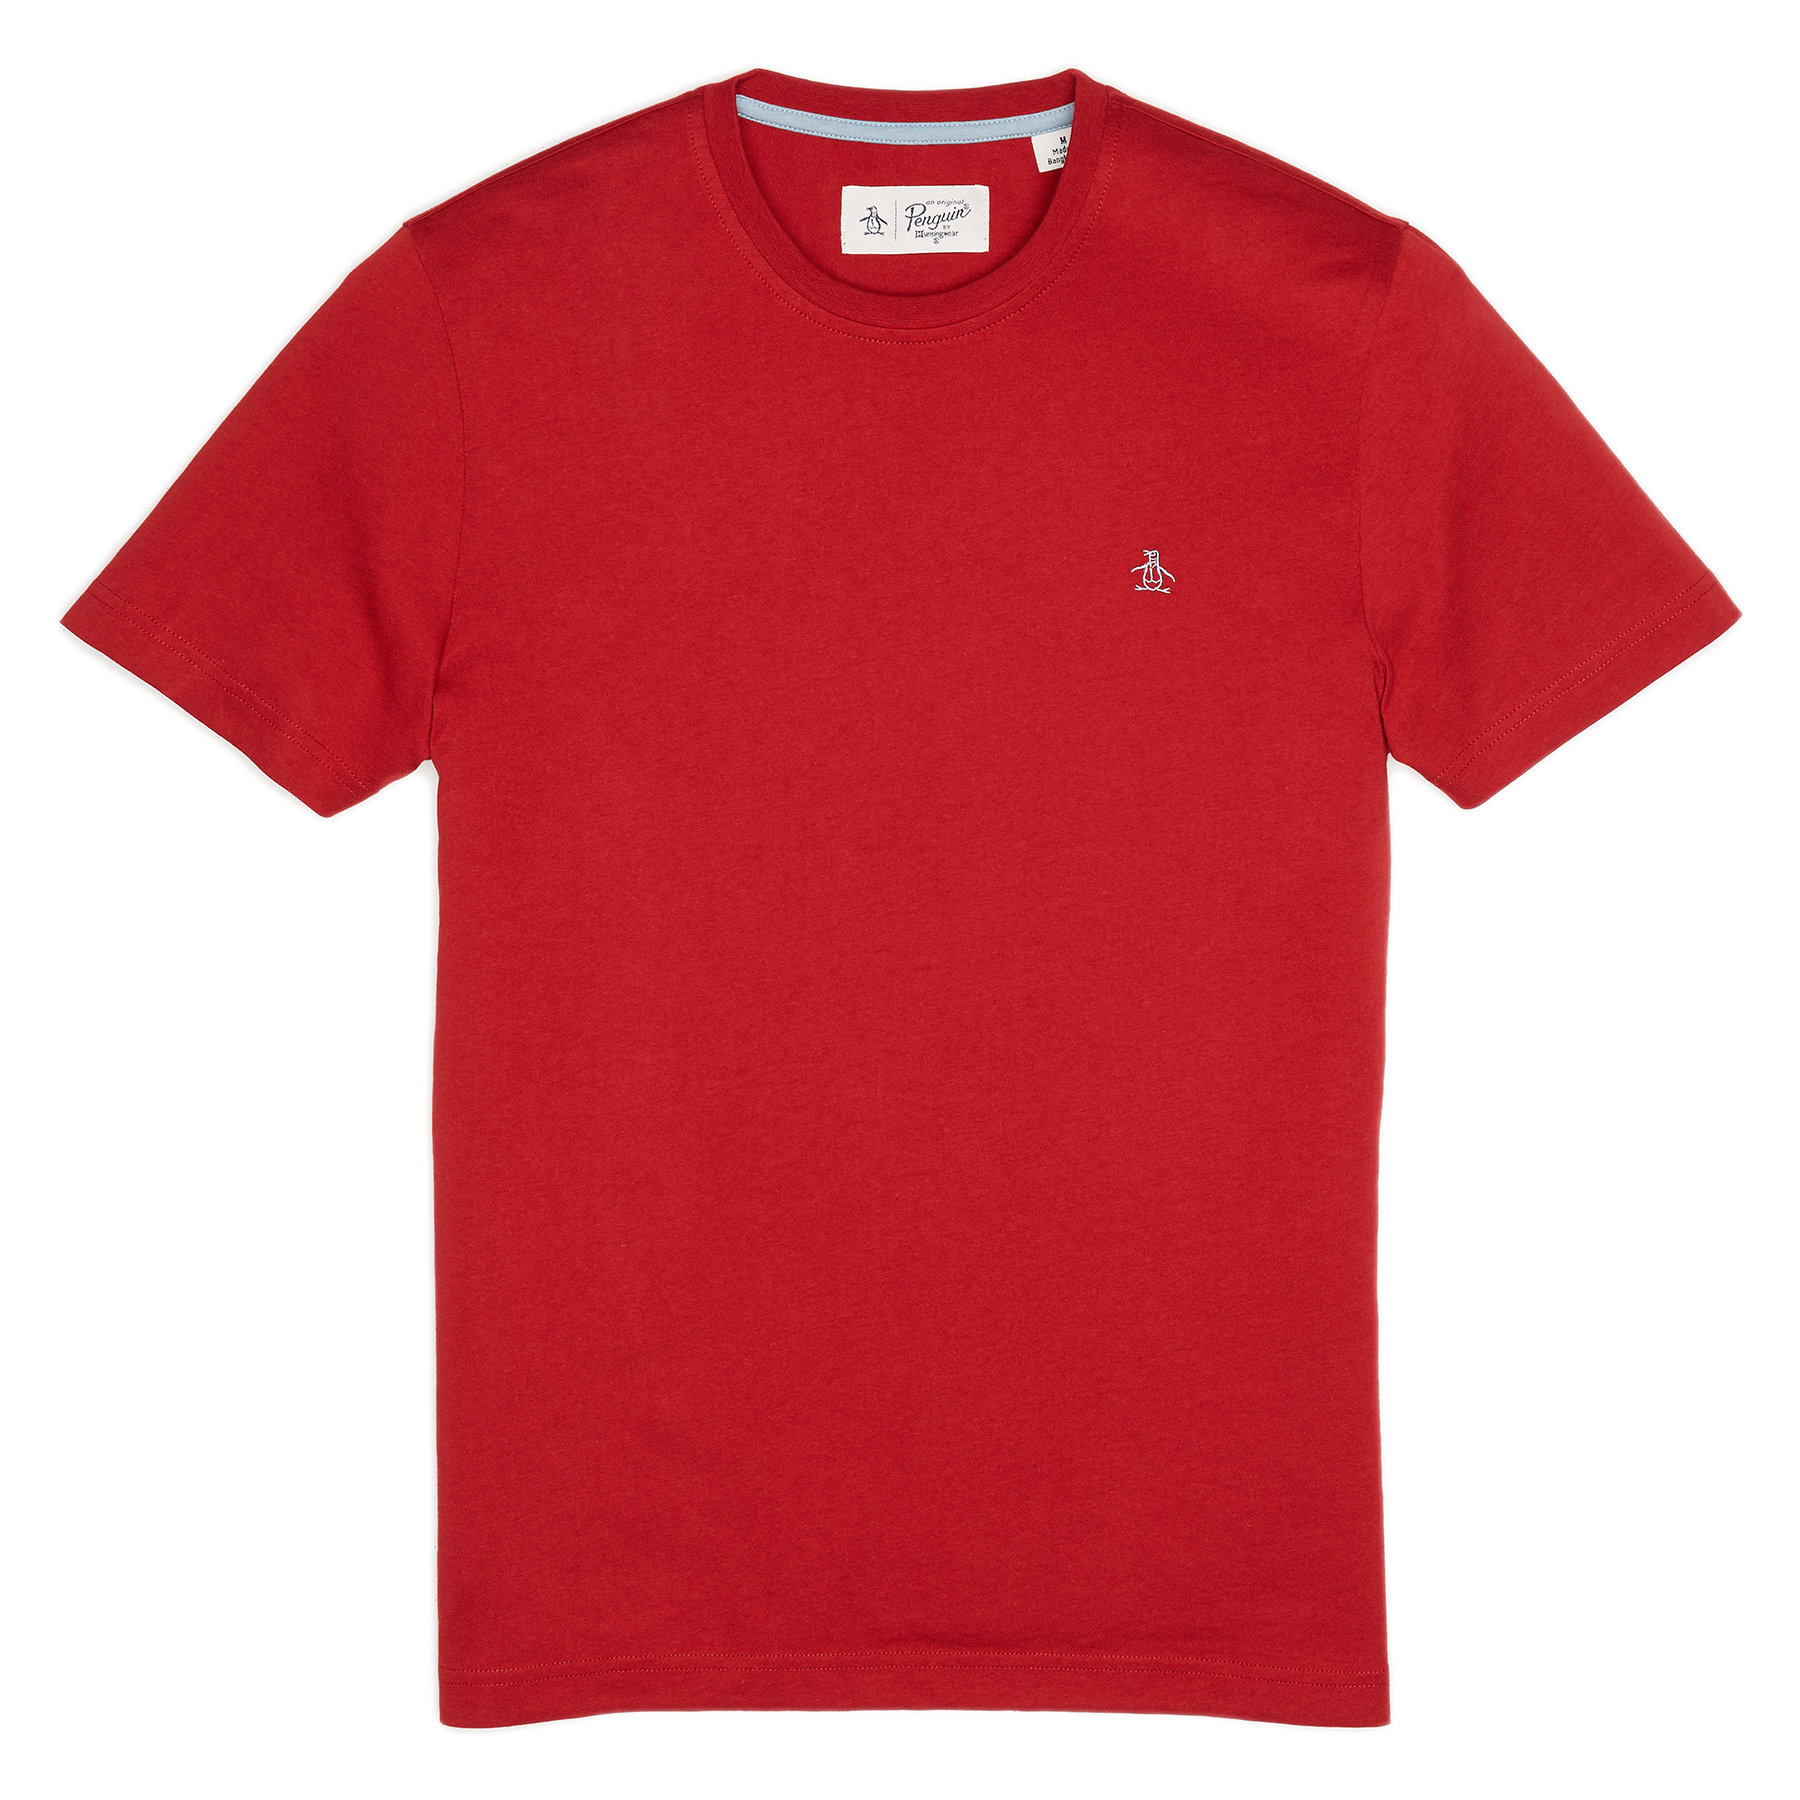 Original Penguin Rio Red Pin point embroidery tee